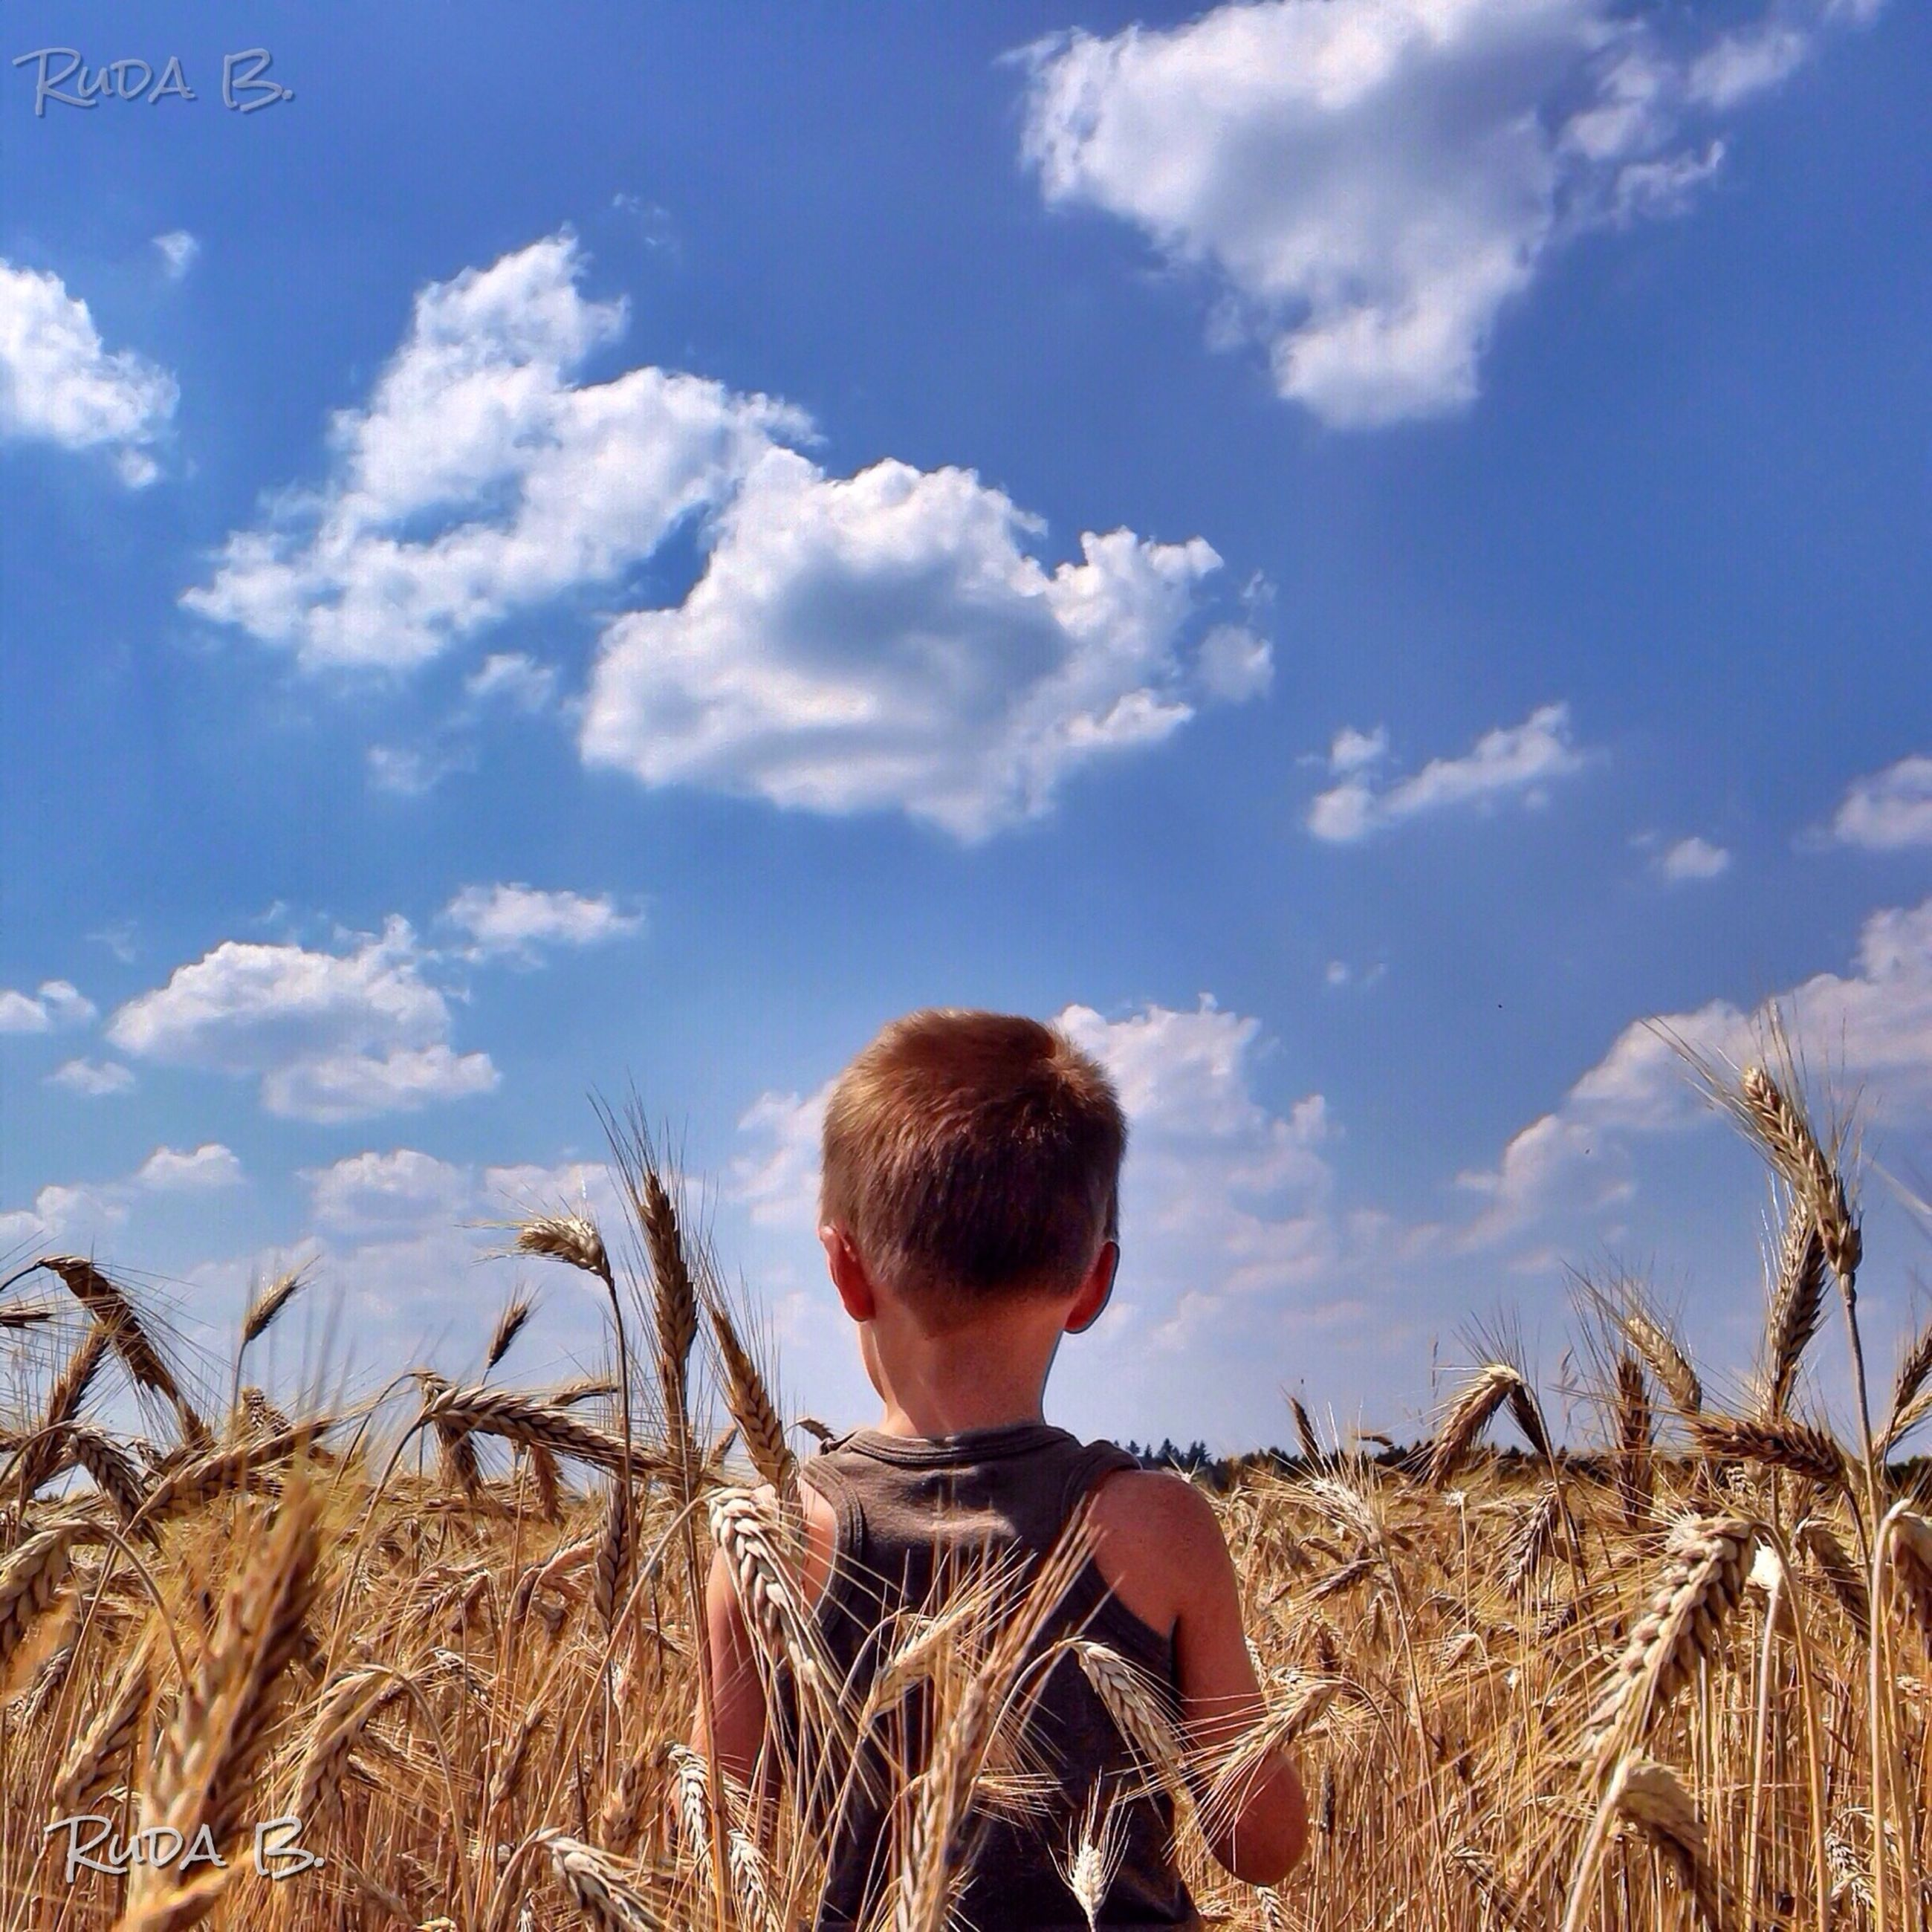 sky, lifestyles, leisure activity, childhood, rear view, agriculture, rural scene, field, casual clothing, person, farm, cloud - sky, elementary age, boys, nature, cloud, crop, waist up